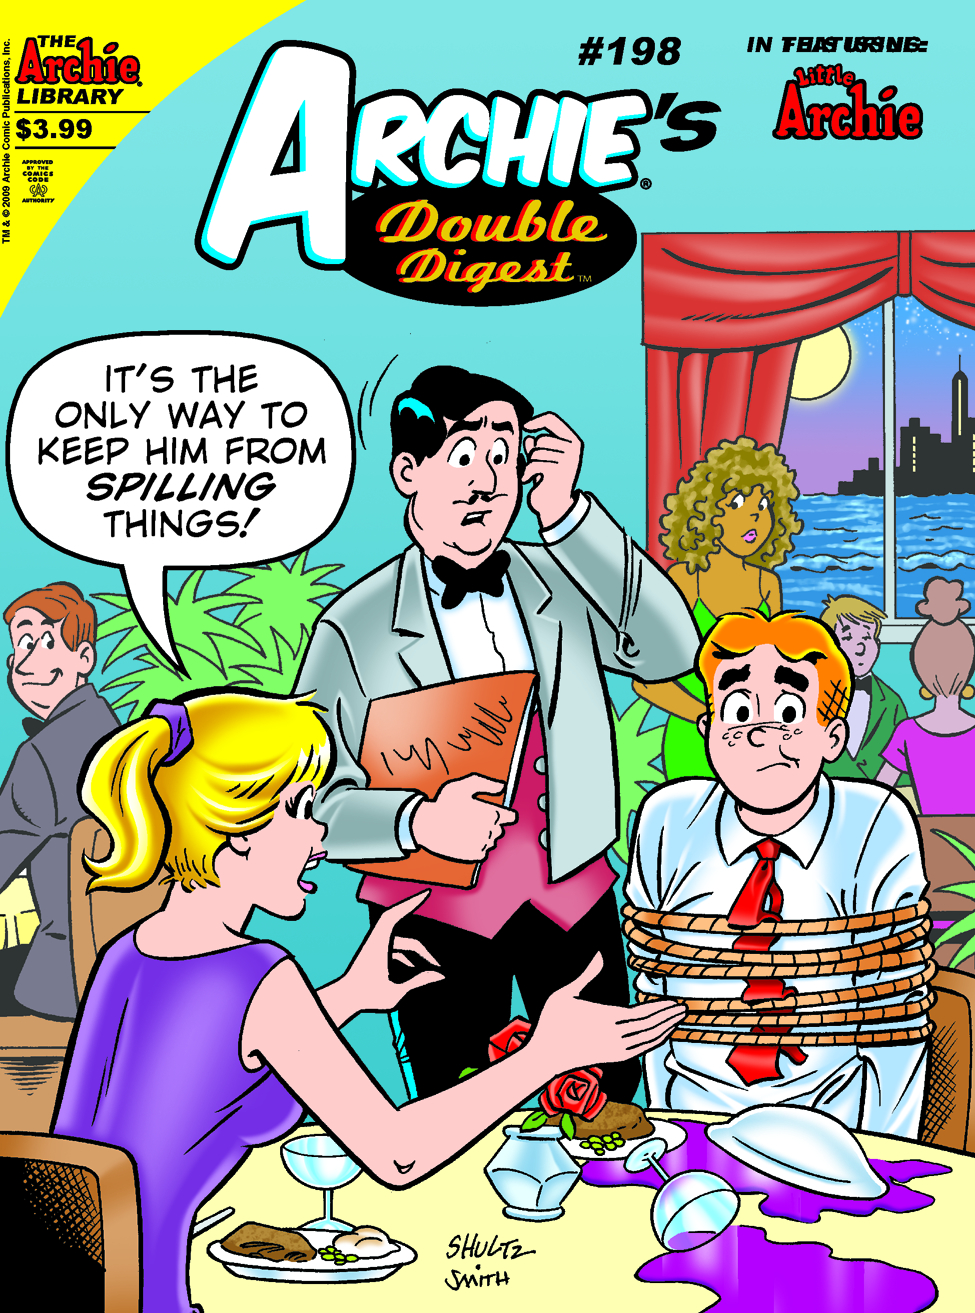 ARCHIE DOUBLE DIGEST #198 (NOTE PRICE)